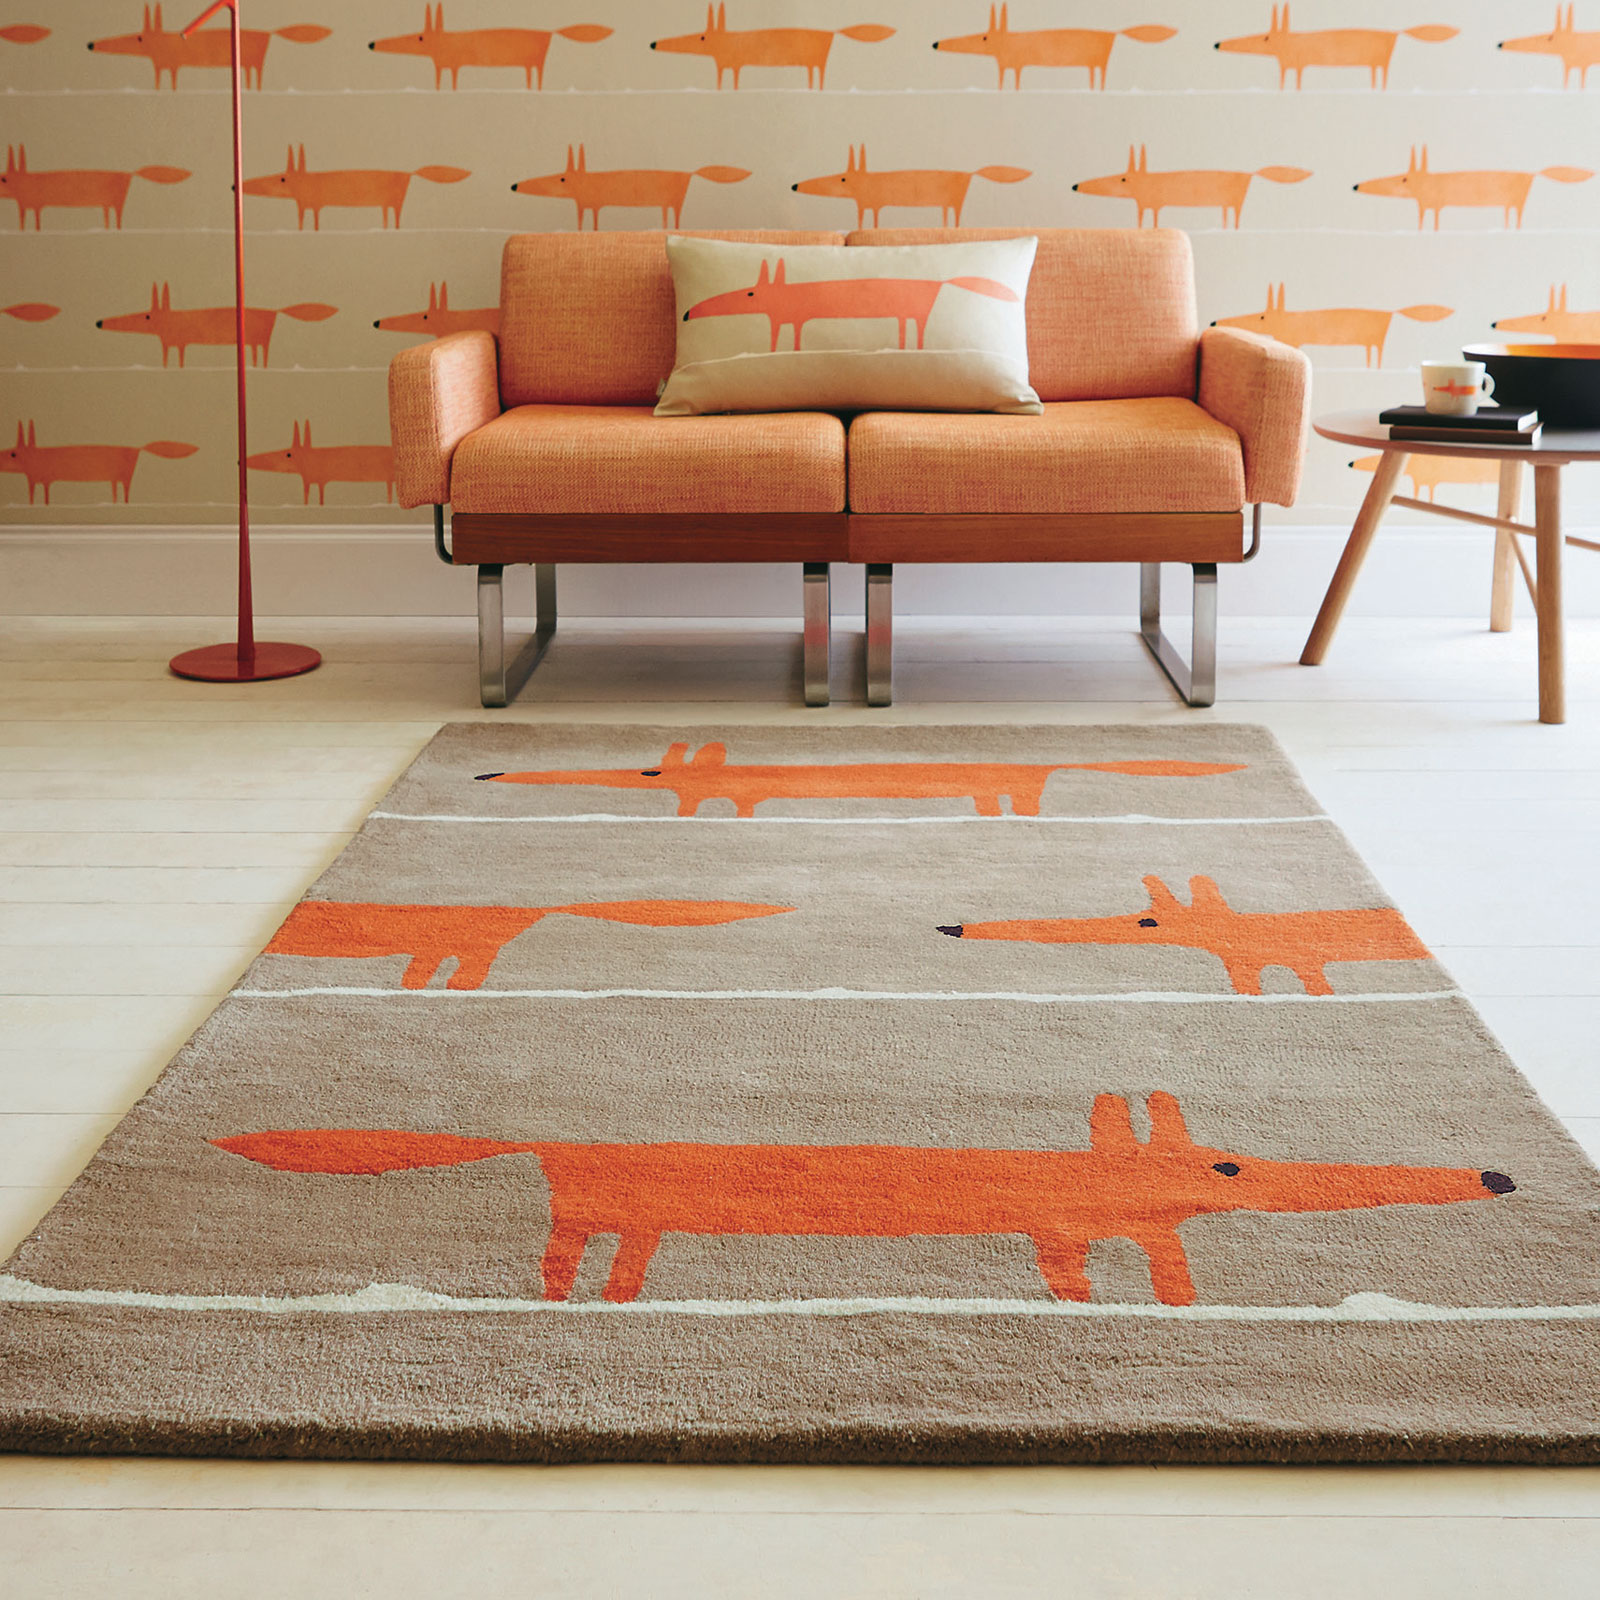 Scion Mr Fox Rugs 25303 Cinnamon Free Uk Delivery The